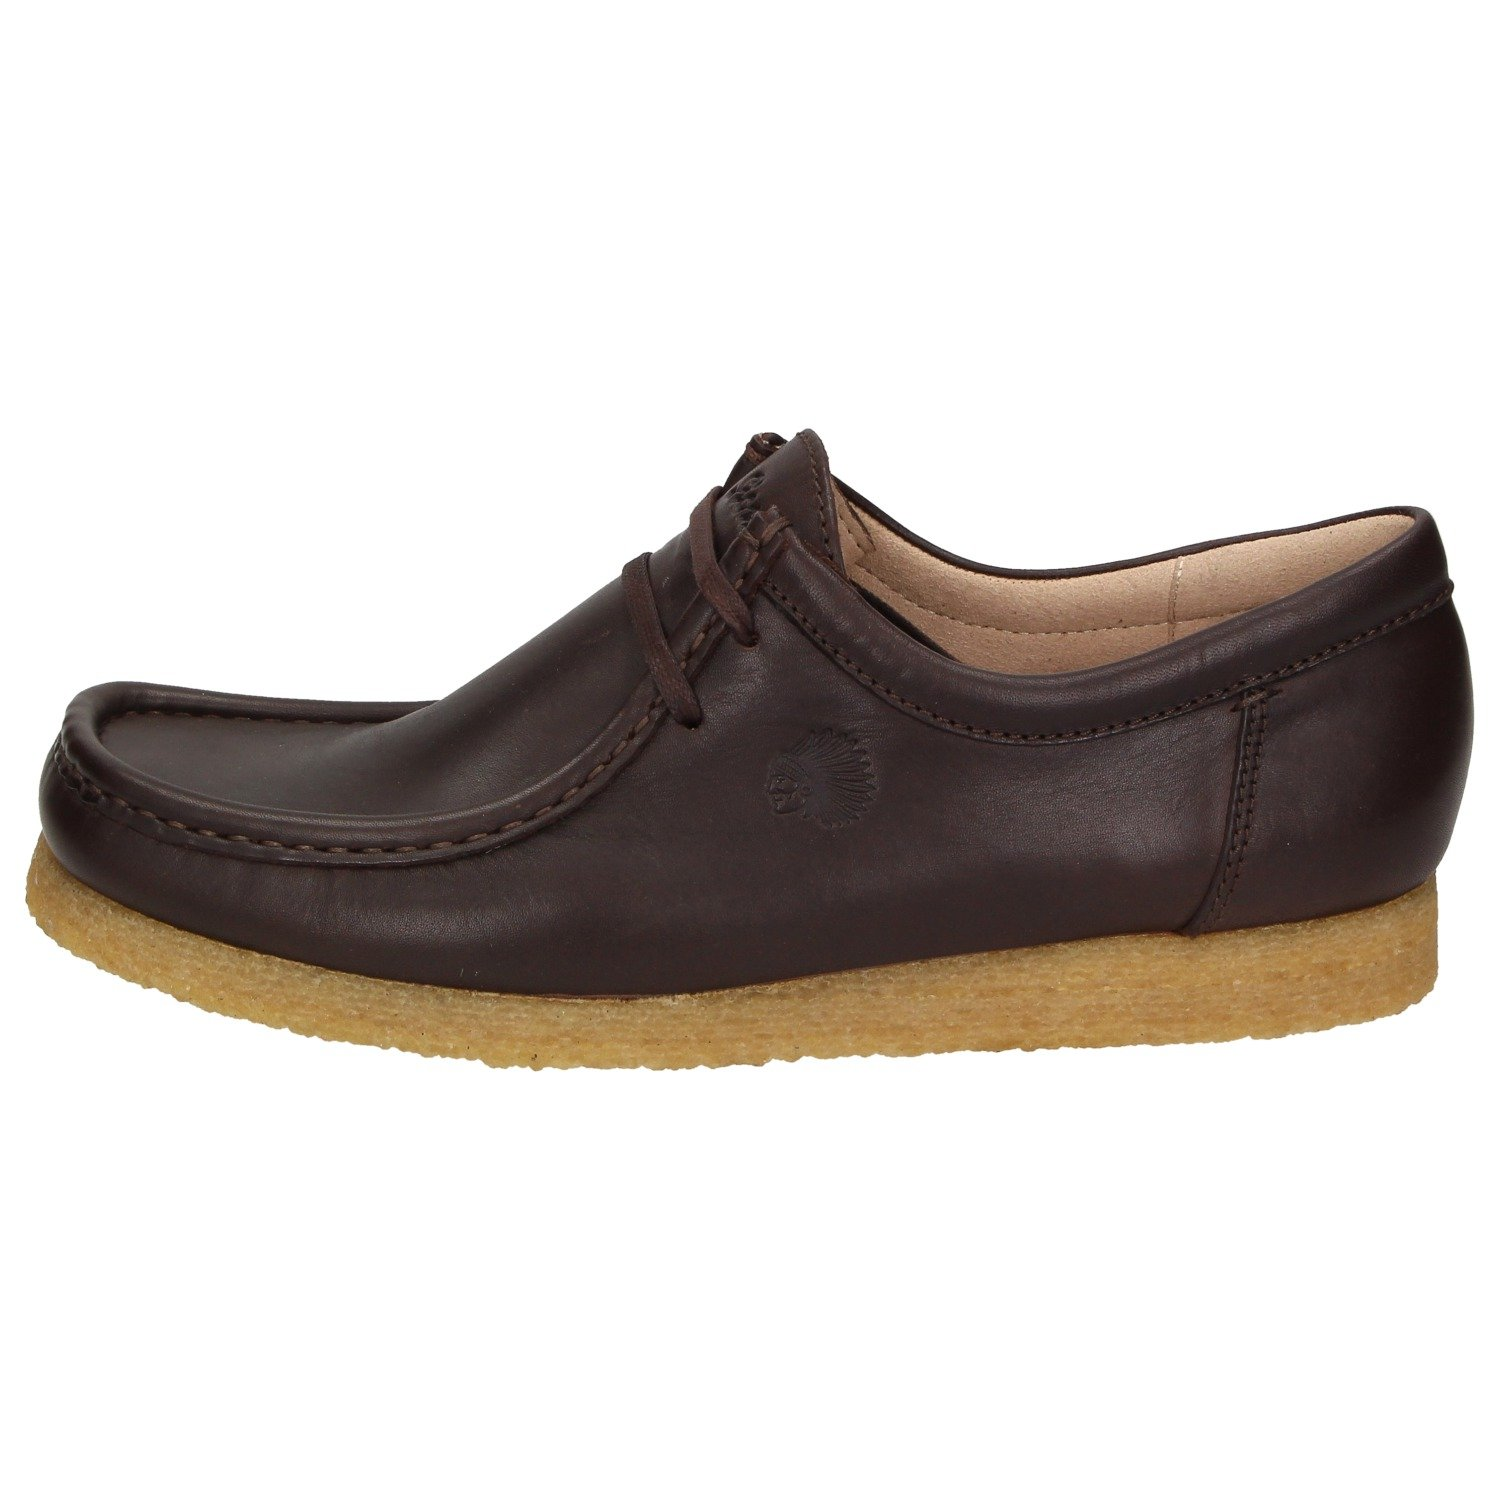 SiouxGrashopper-h-141 - Mocasines Hombre, Color marrón, Talla 39 EU: Amazon.es: Zapatos y complementos